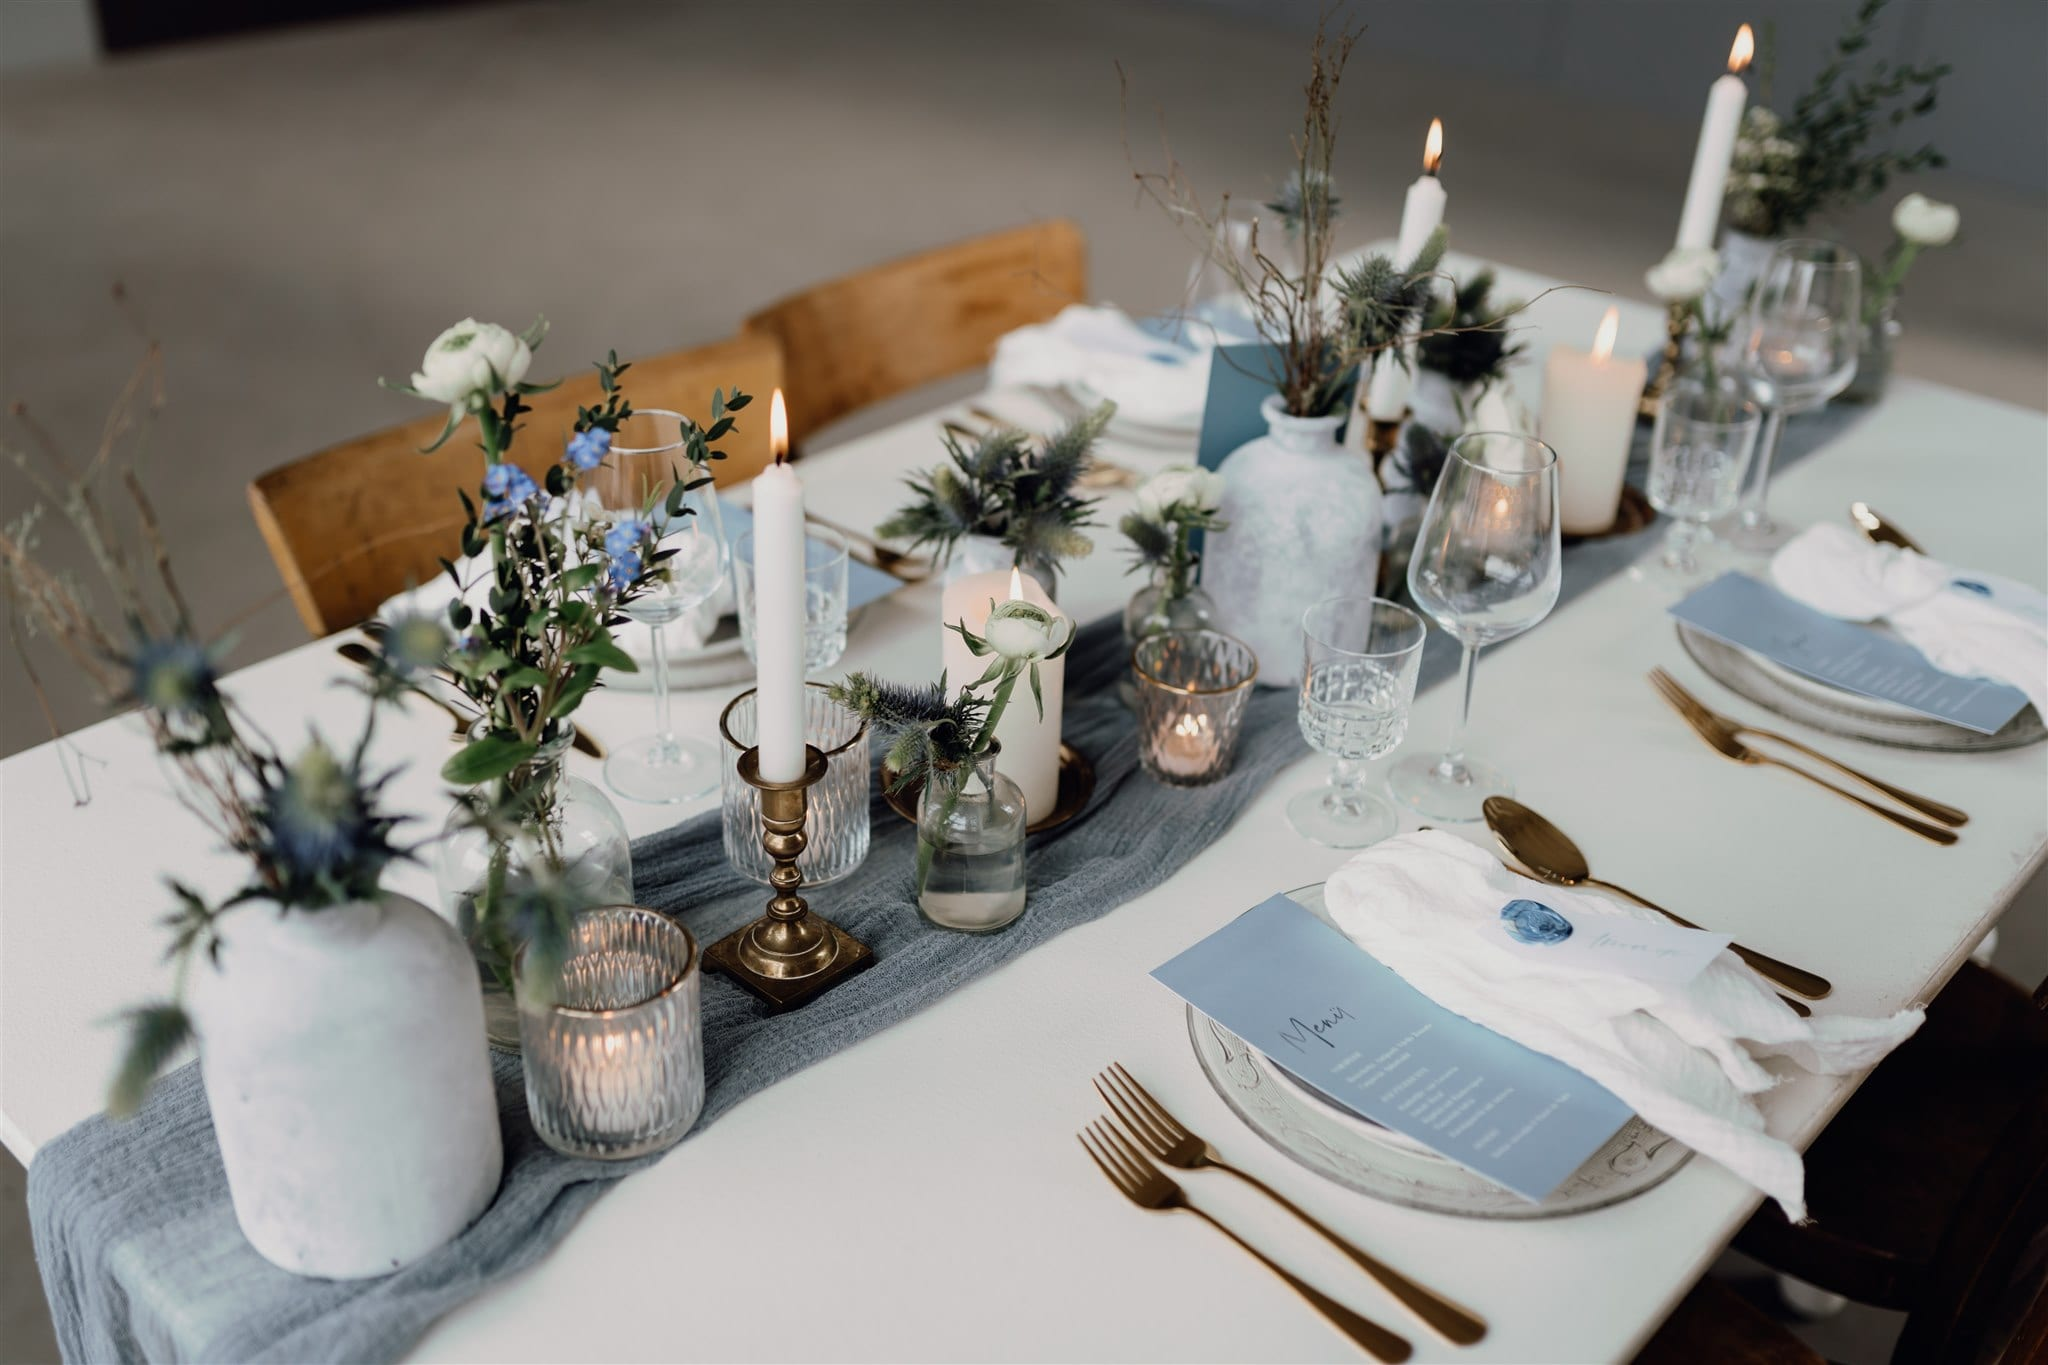 INDUSTRIAL SOFT EDGY STYLED SHOOT